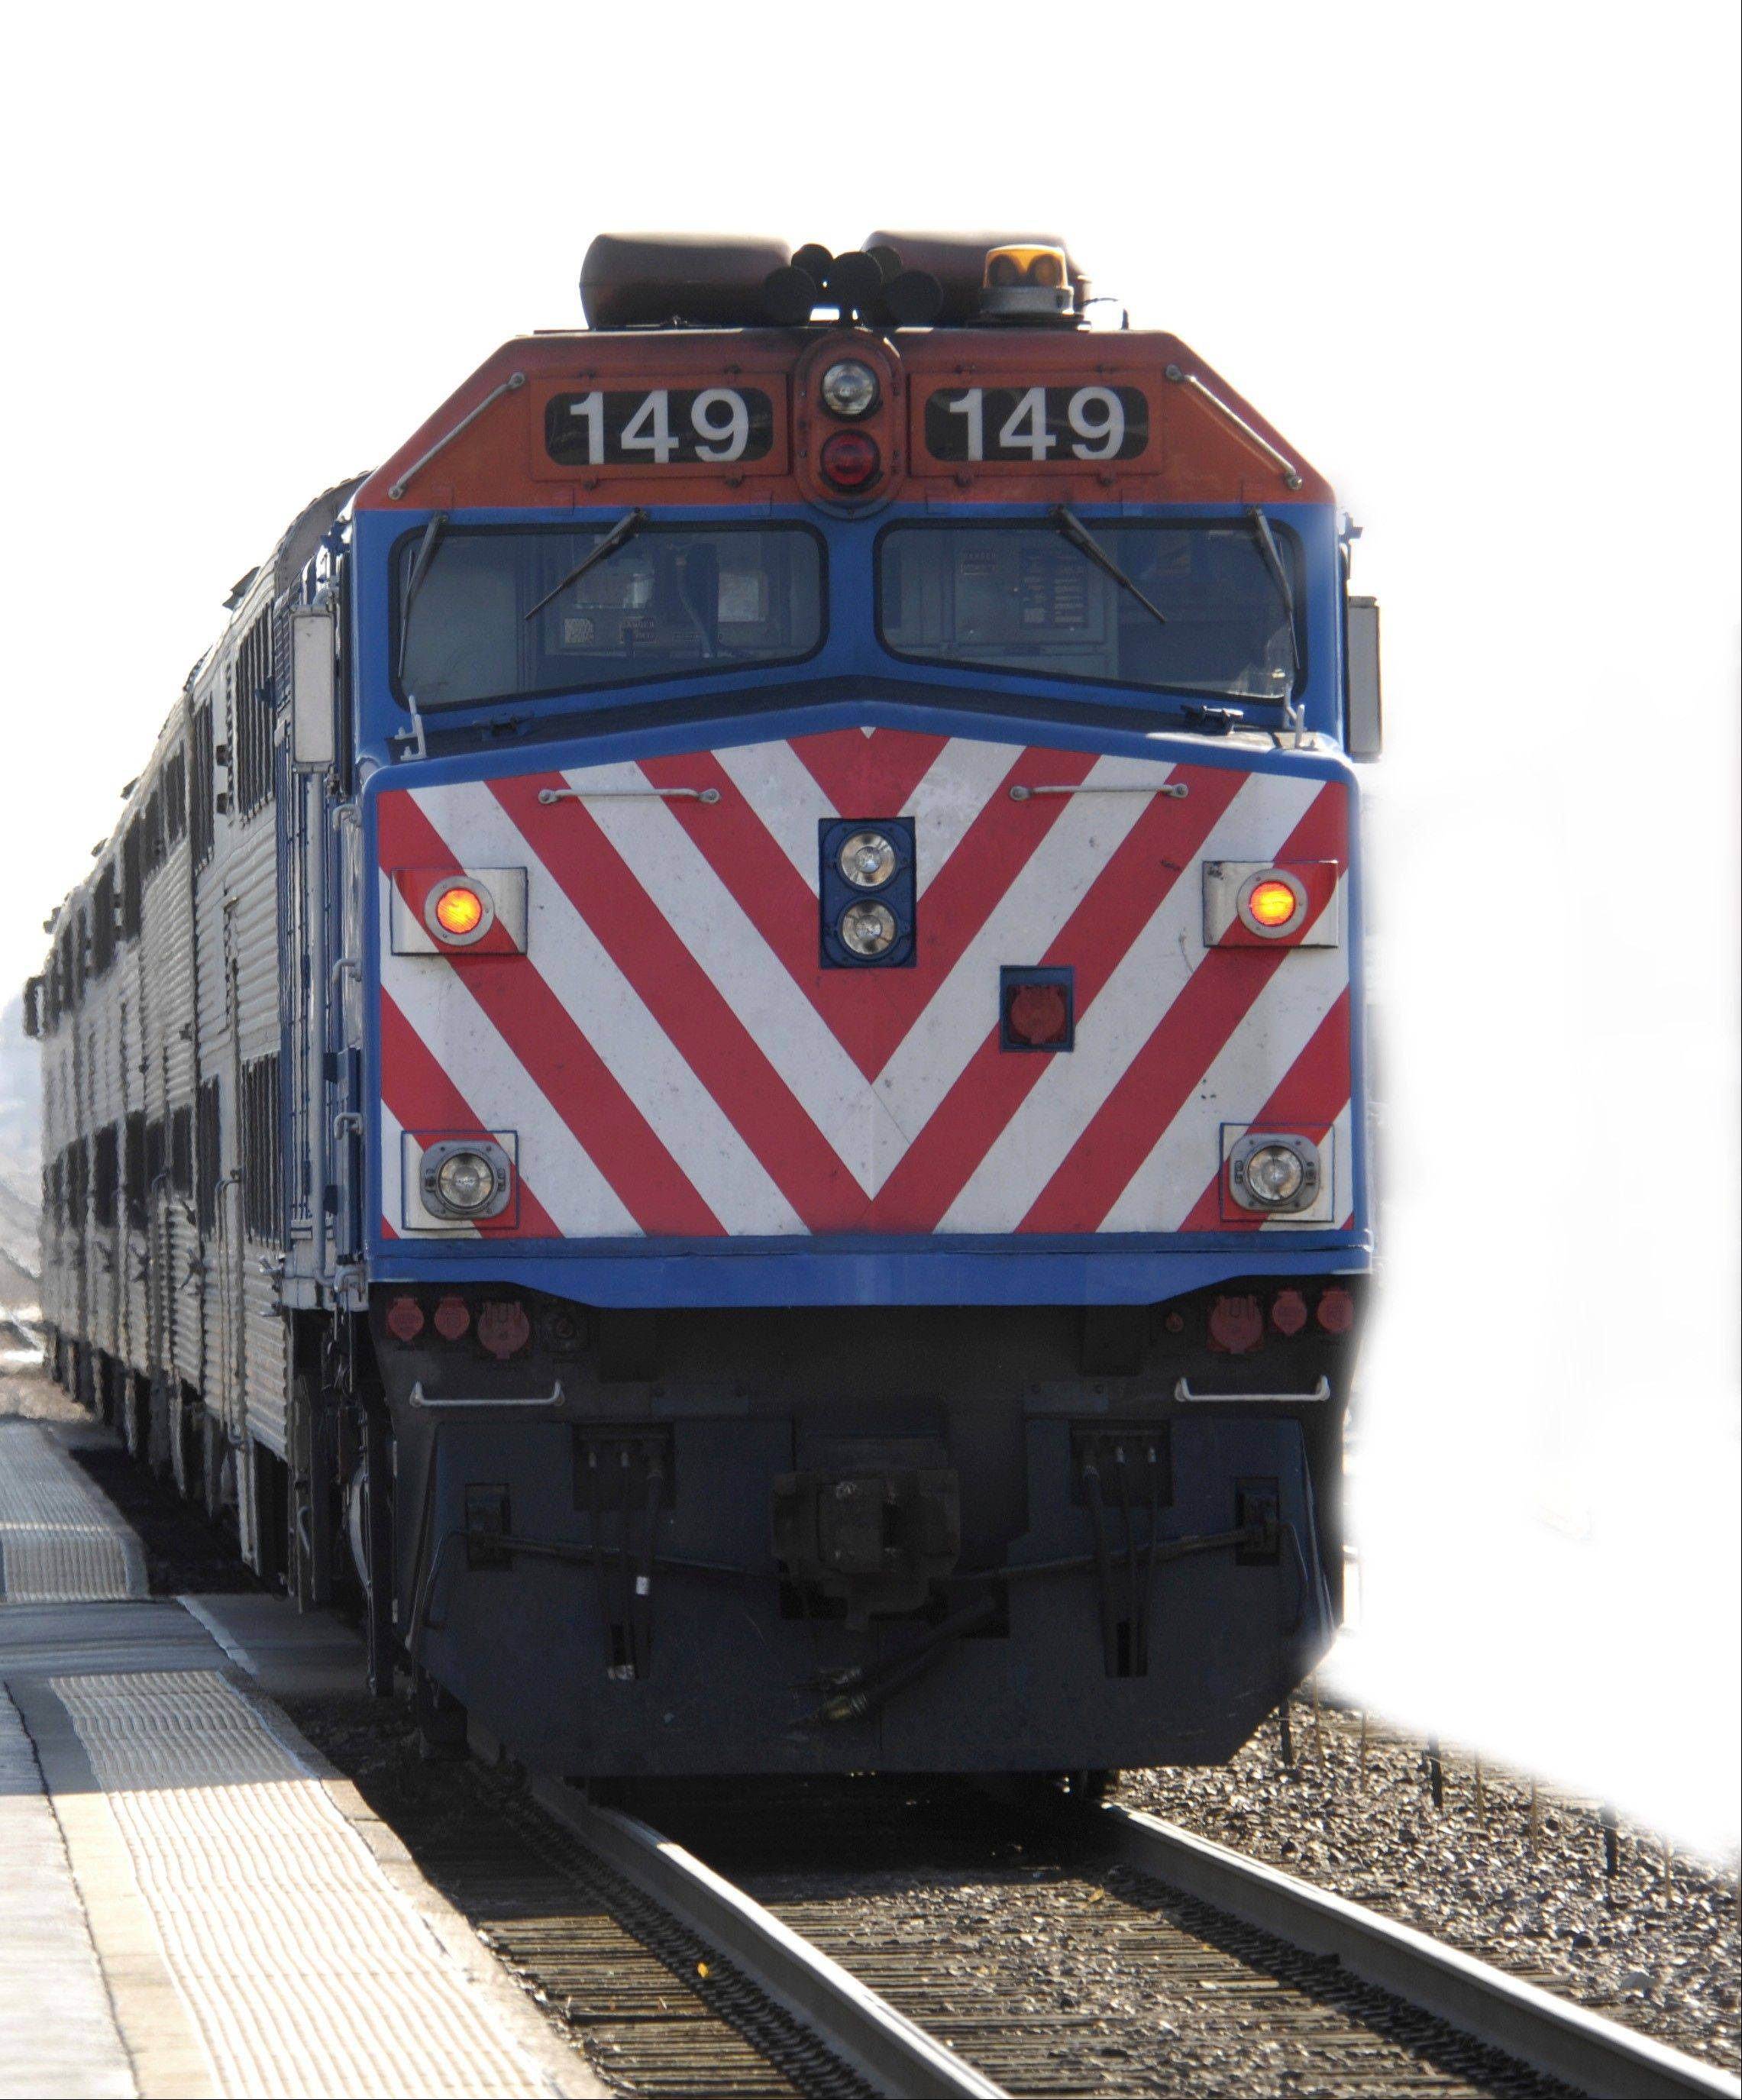 Daily Herald file photoNew locomotives could be coming if the RTA takes out a loan to pay for transit infrastructure.